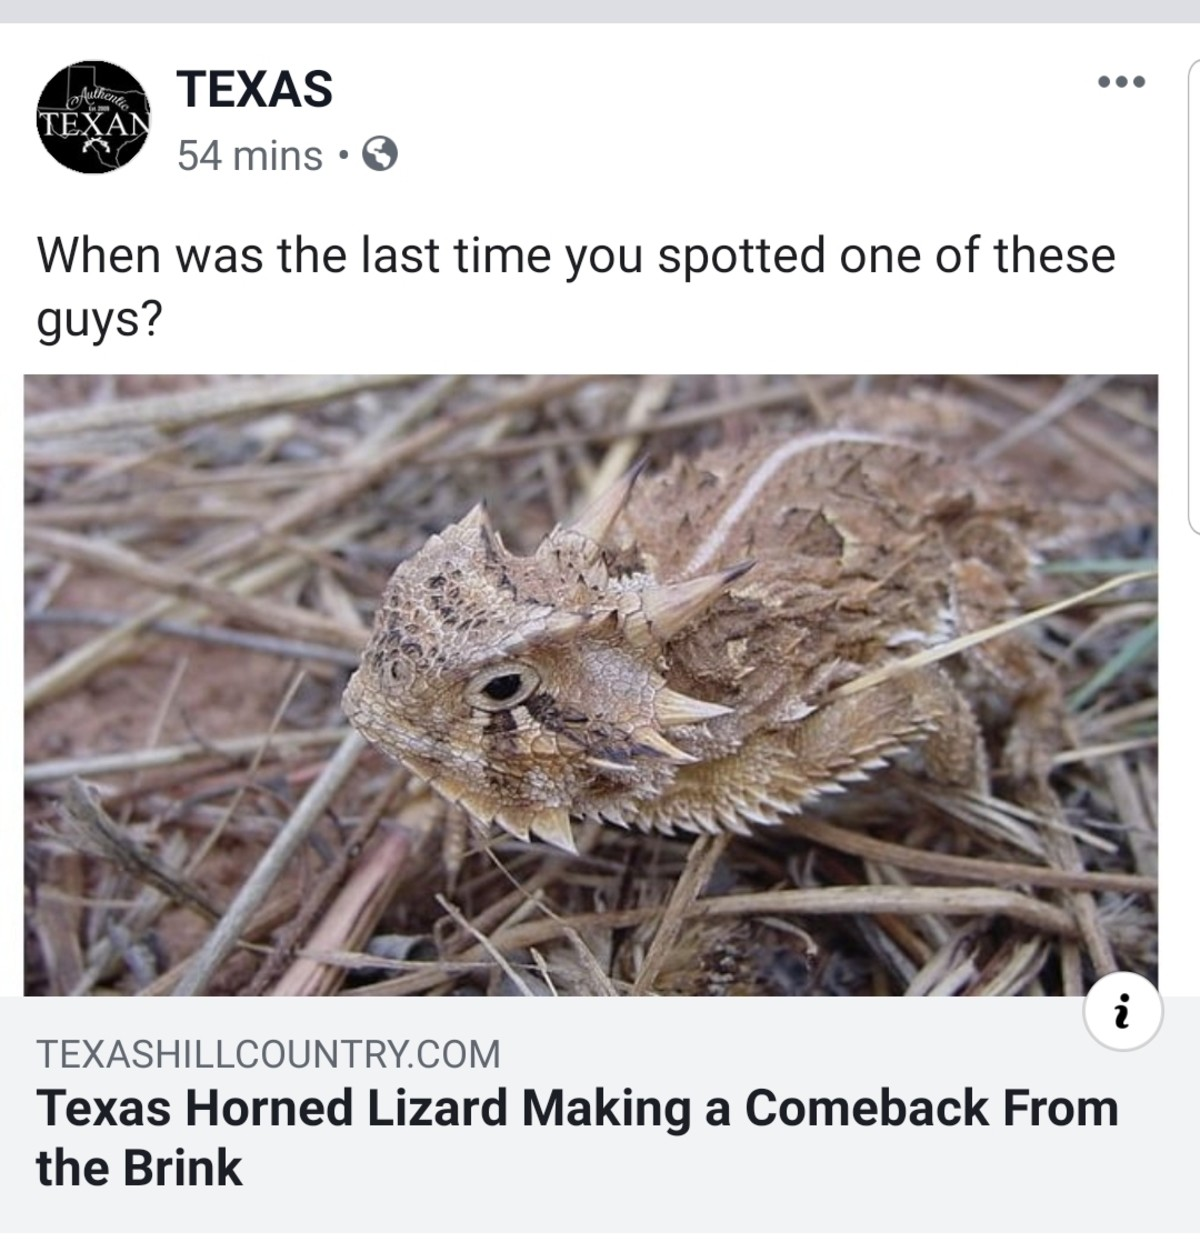 Texas Horned Lizard. https:// texashillcountry . com/texas-horned-lizard-comeback/ join list: Texas (166 subs)Mention History.. As a native Texan that used to find and mess with these guys a lot as a kid, this warms my heart immensely.